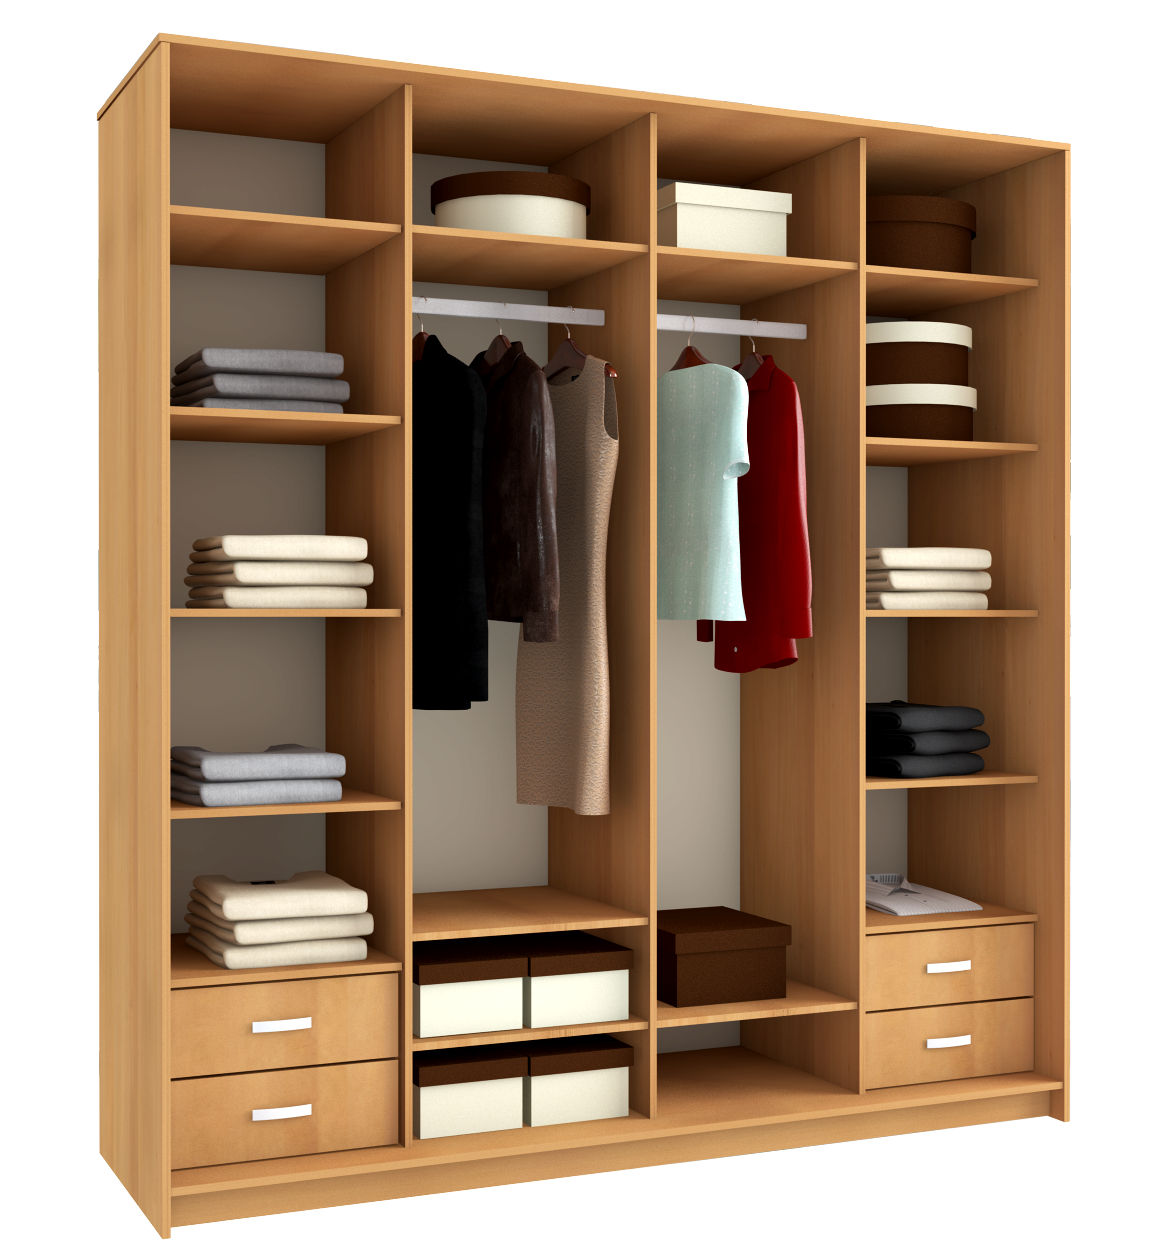 How to make shelves in the closet: useful tips.